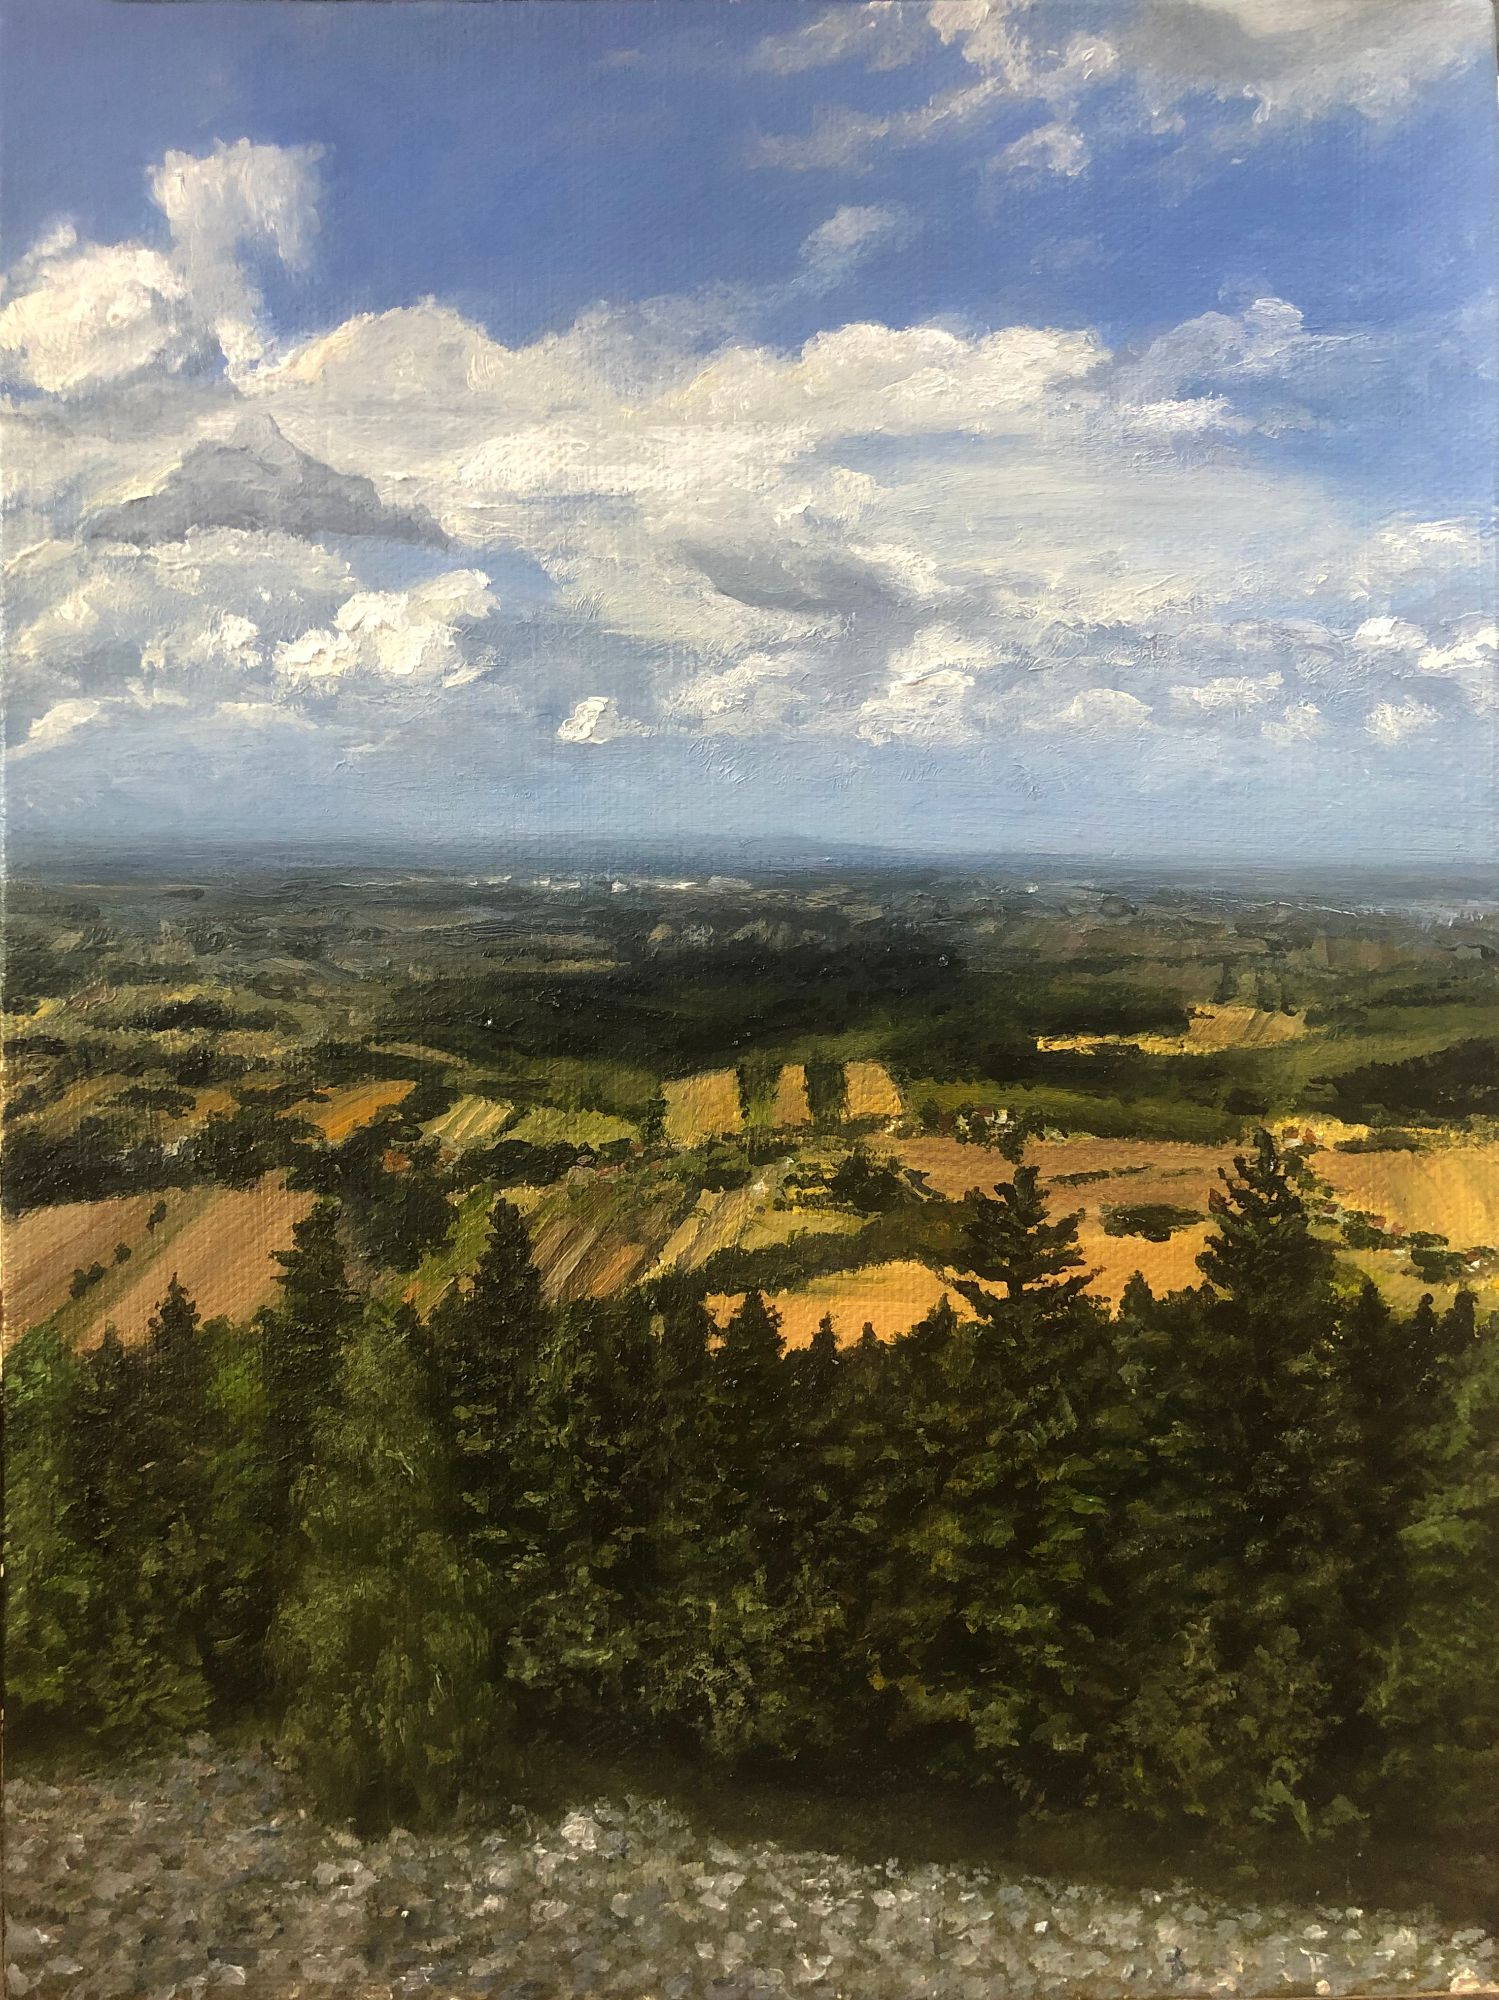 View from the Bald Mountain in Poland